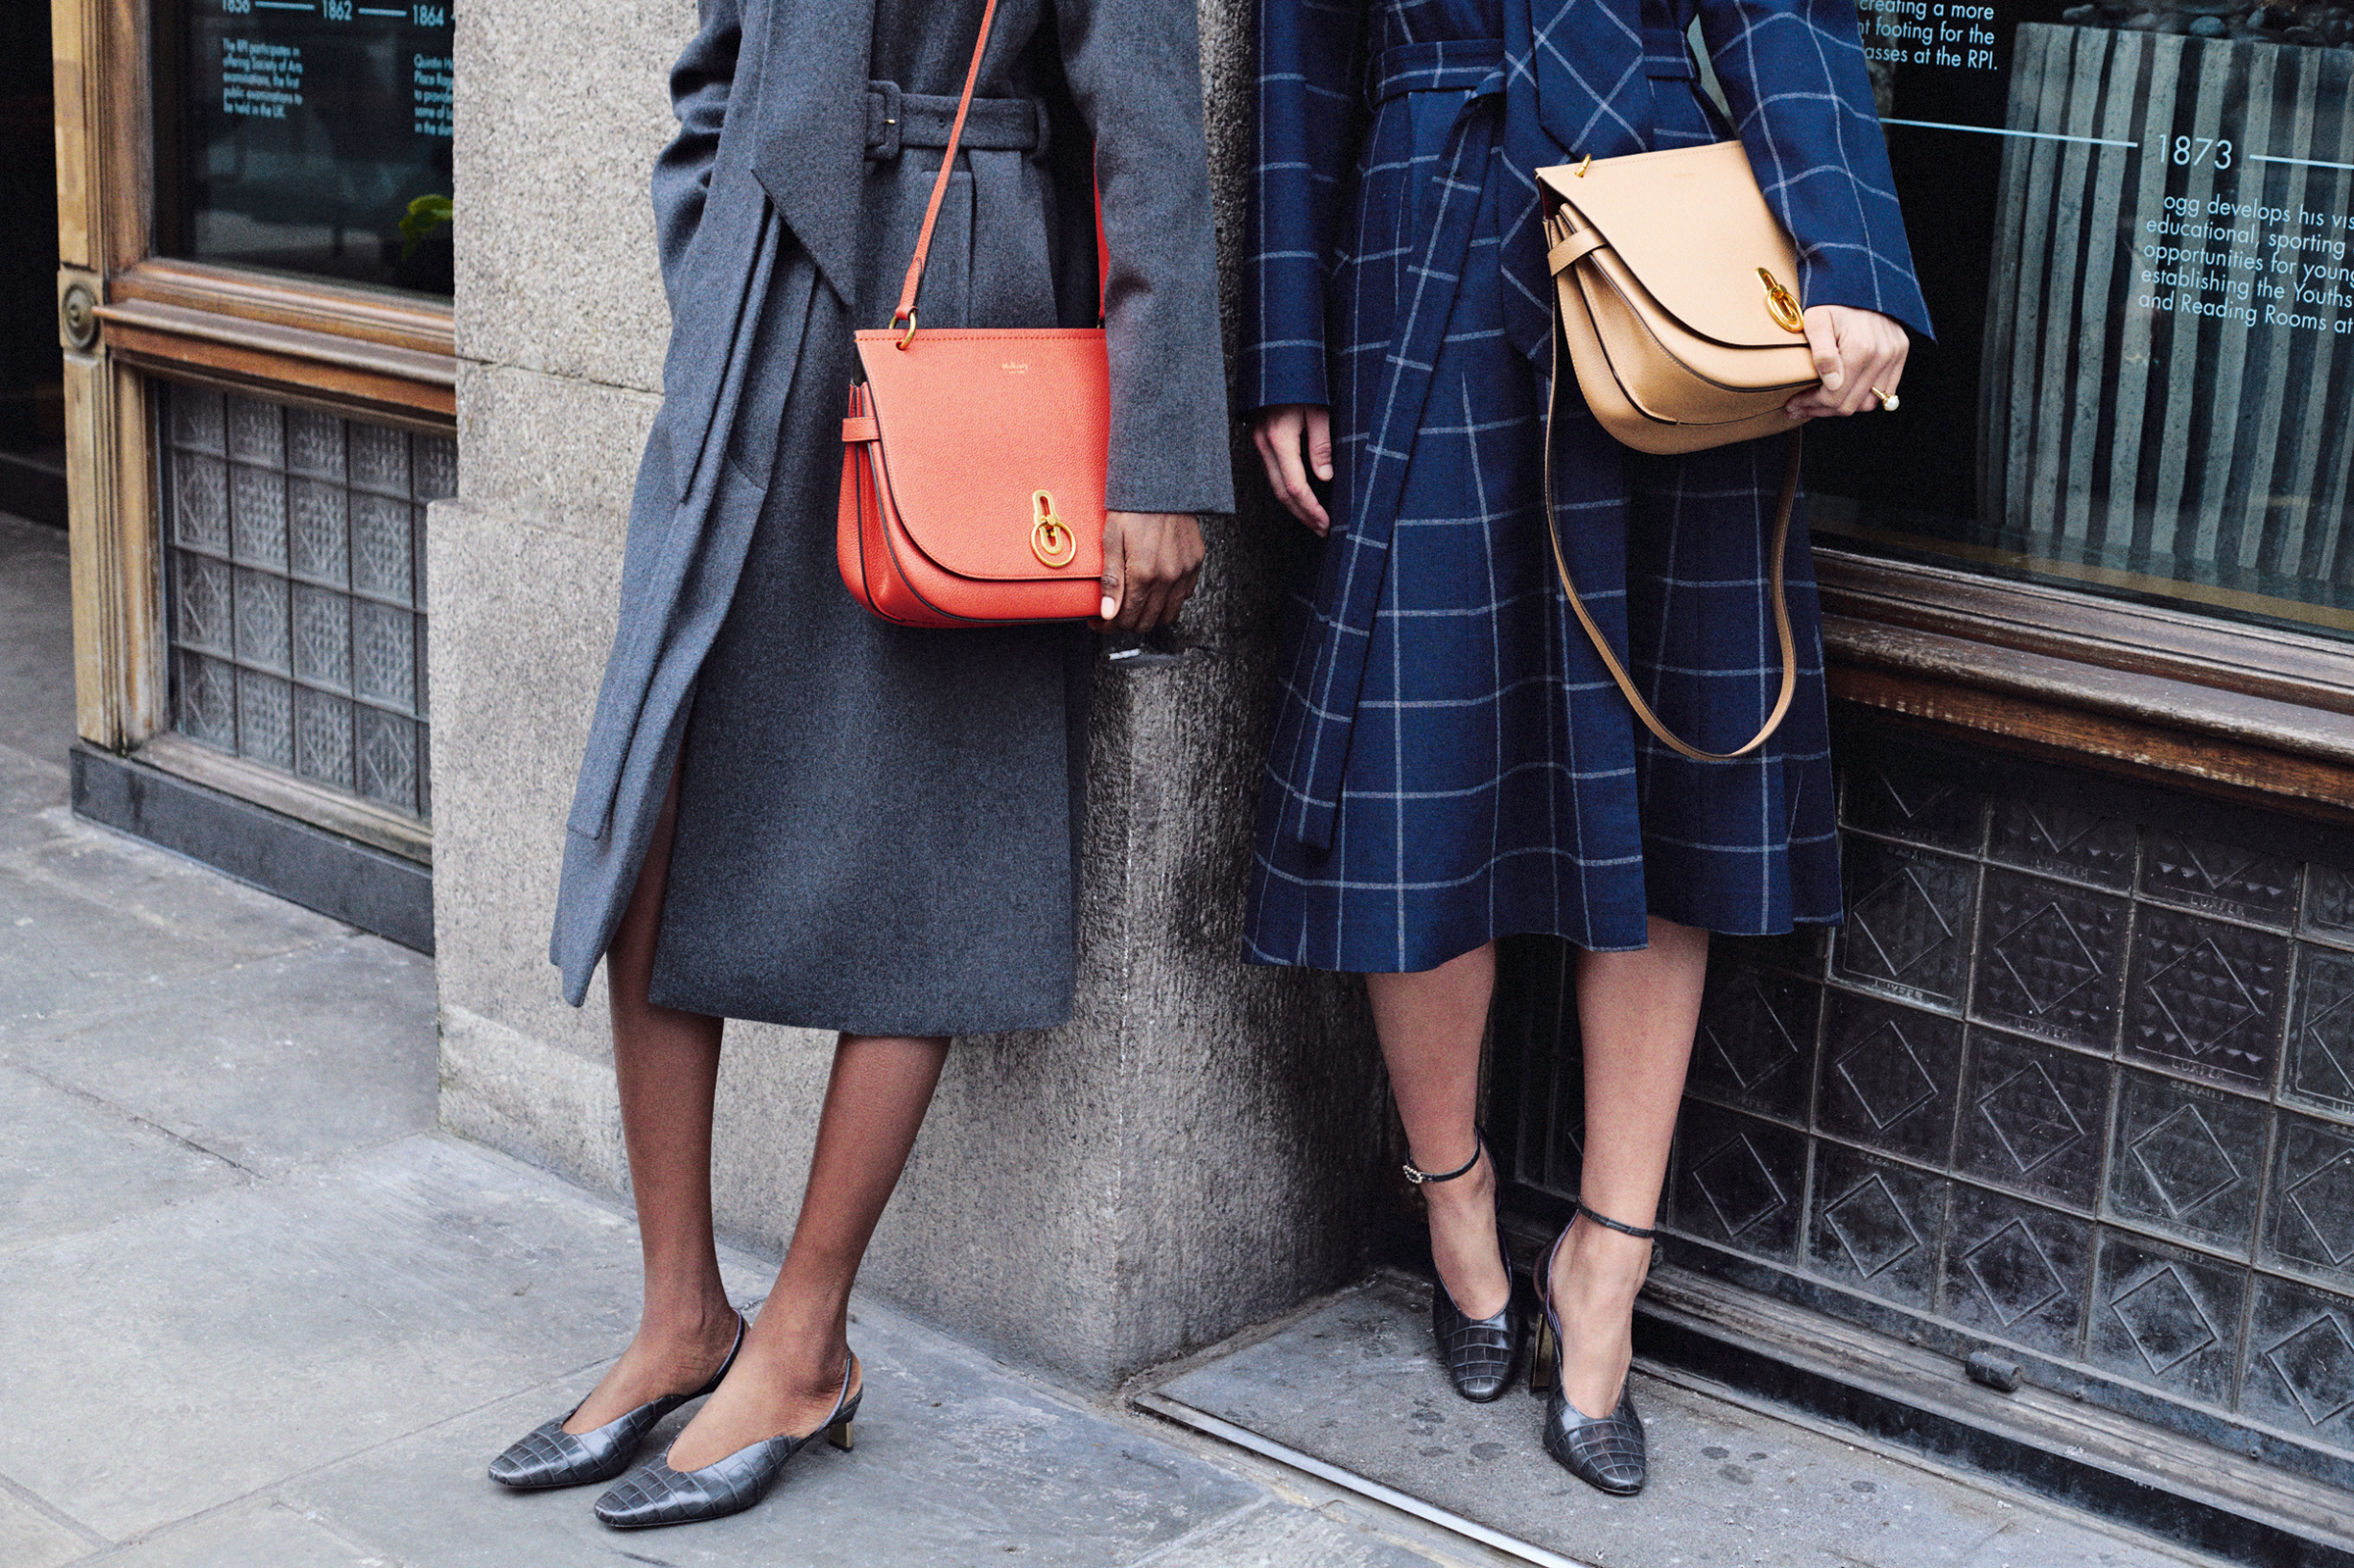 095da21fdbf The return of perfectly proportioned classic handbags | How To Spend It